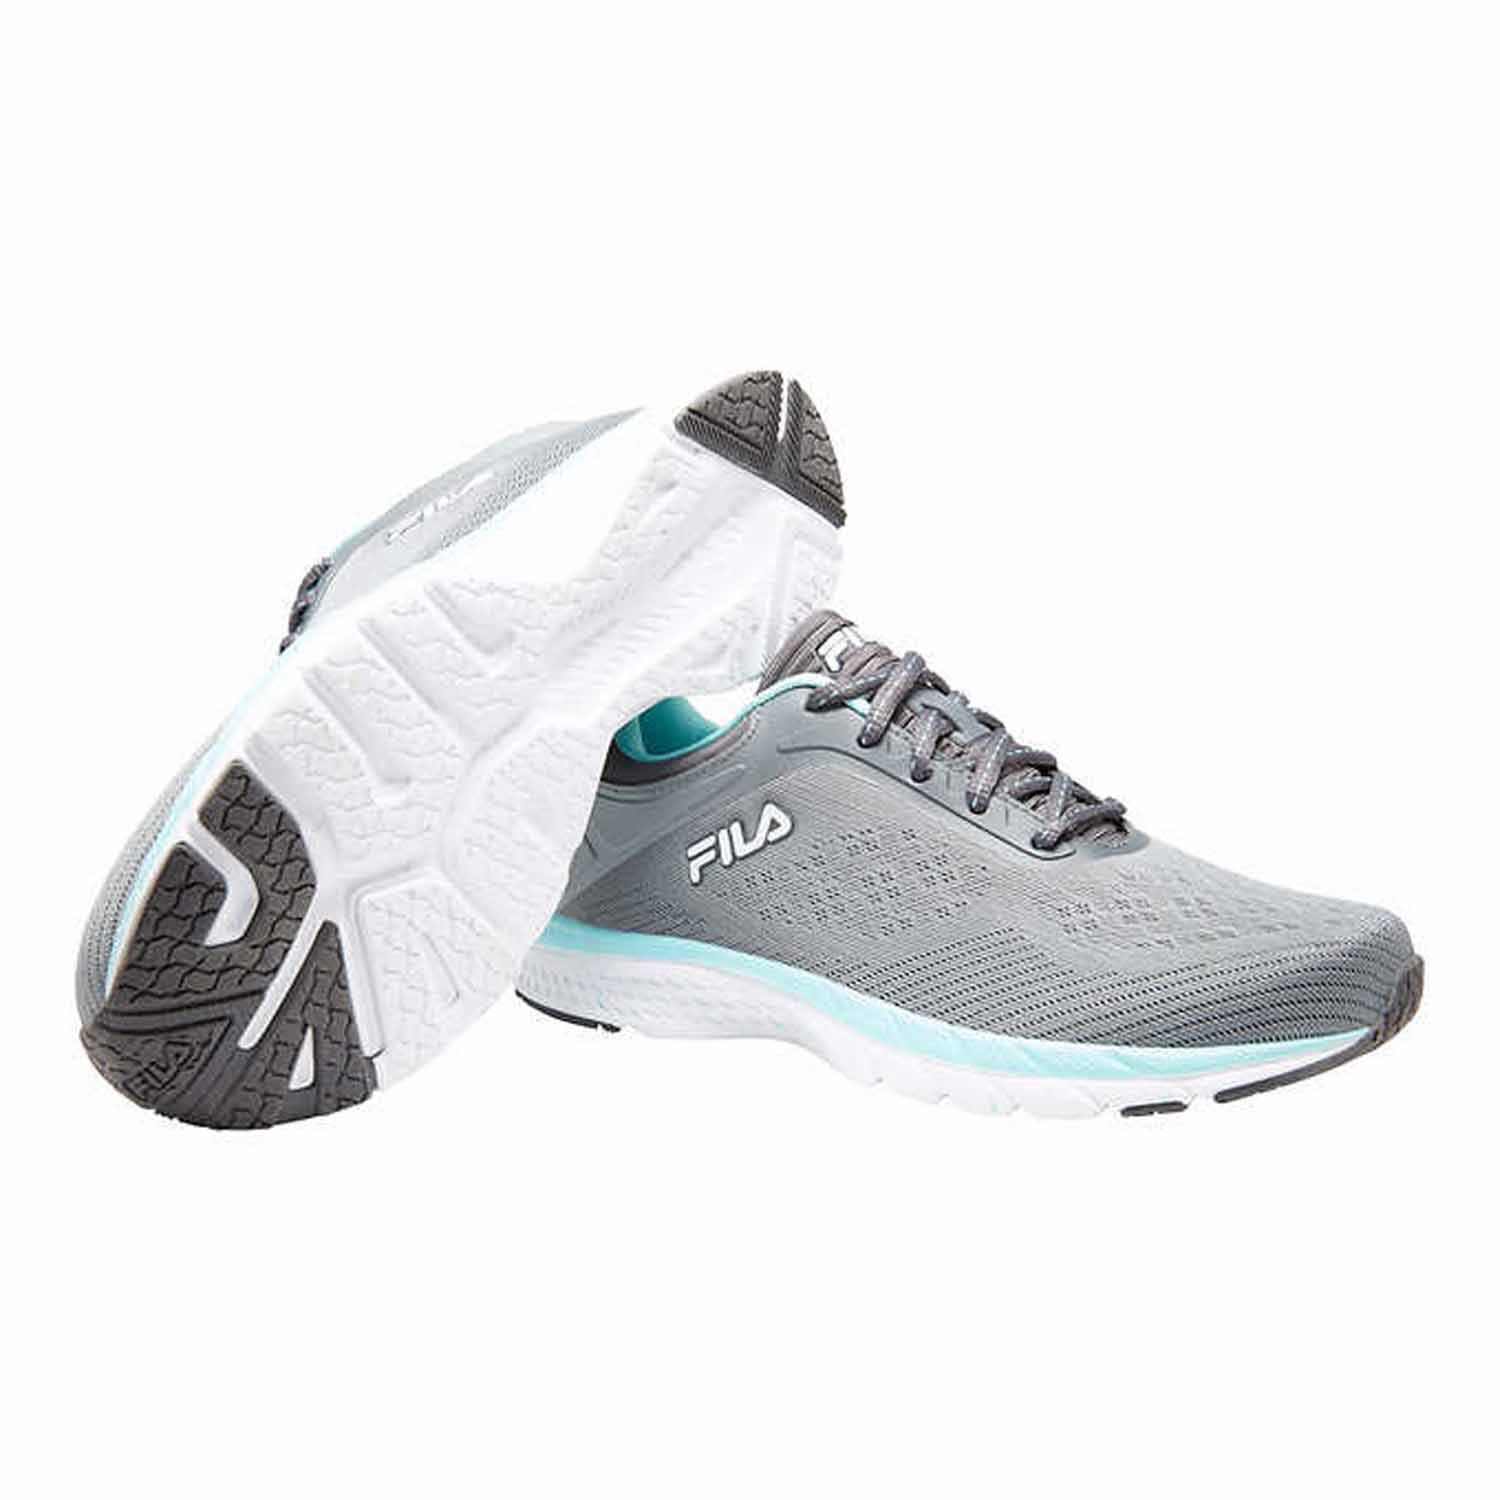 acb3925358701 Fila Womens Memory Foam Outreach Athletic Shoe-New Without Box